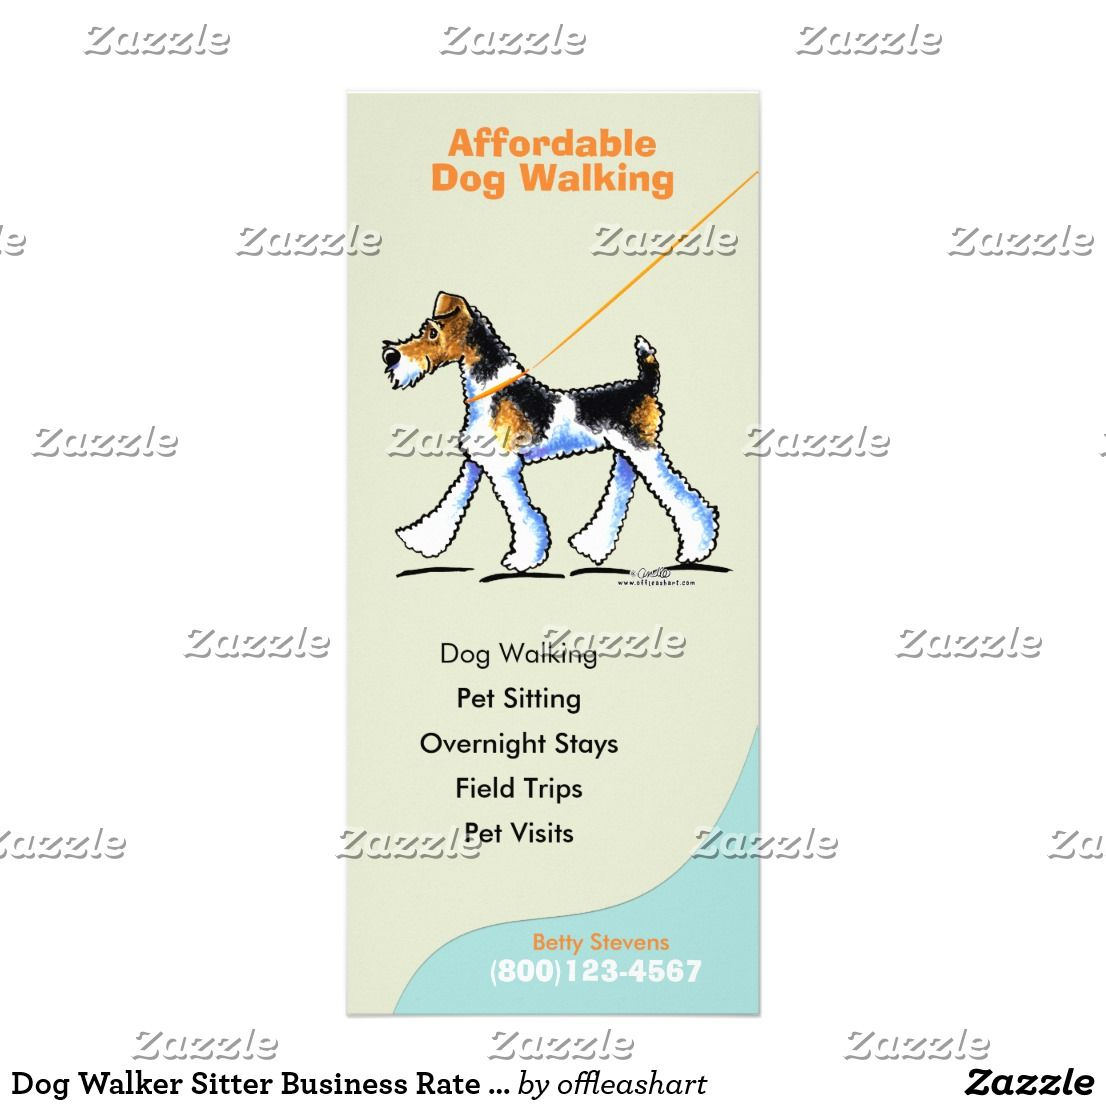 Dog Walker Sitter Business Rate Card Zazzle Co Uk Dog Walking